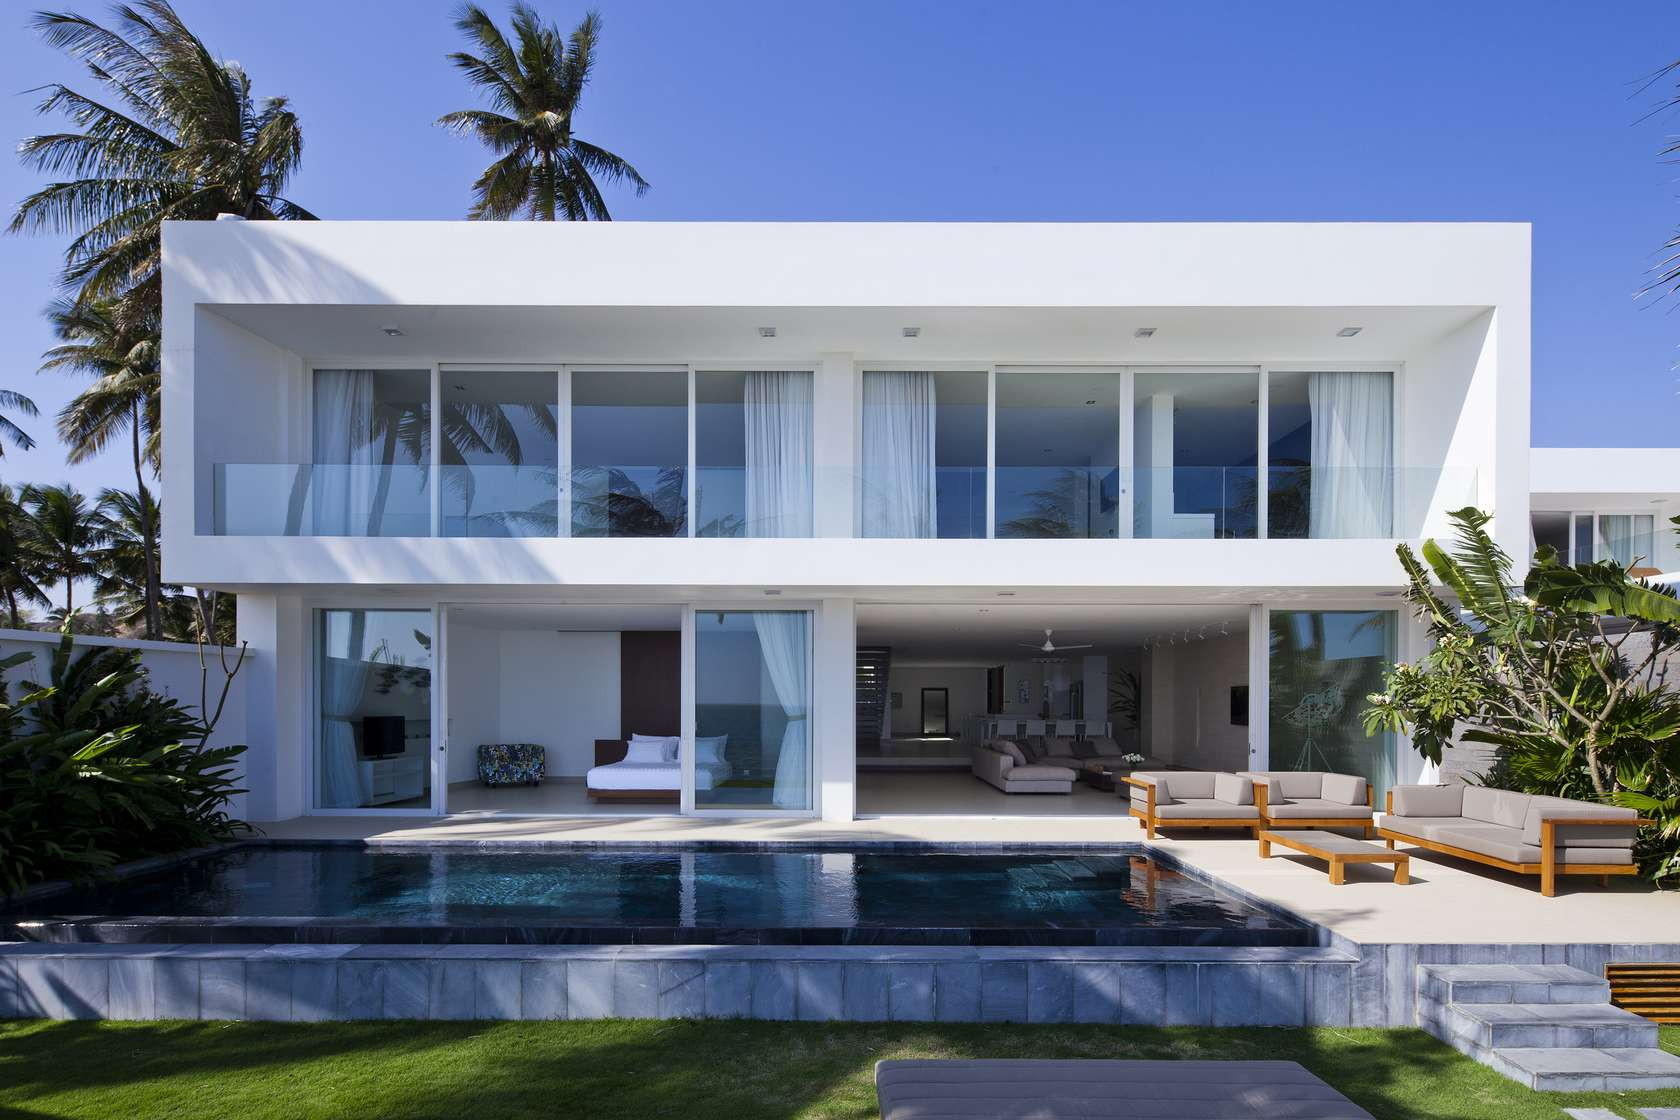 Beautiful Home Design With Modern Vintage Interior Ocean View Beautiful Modern Beach